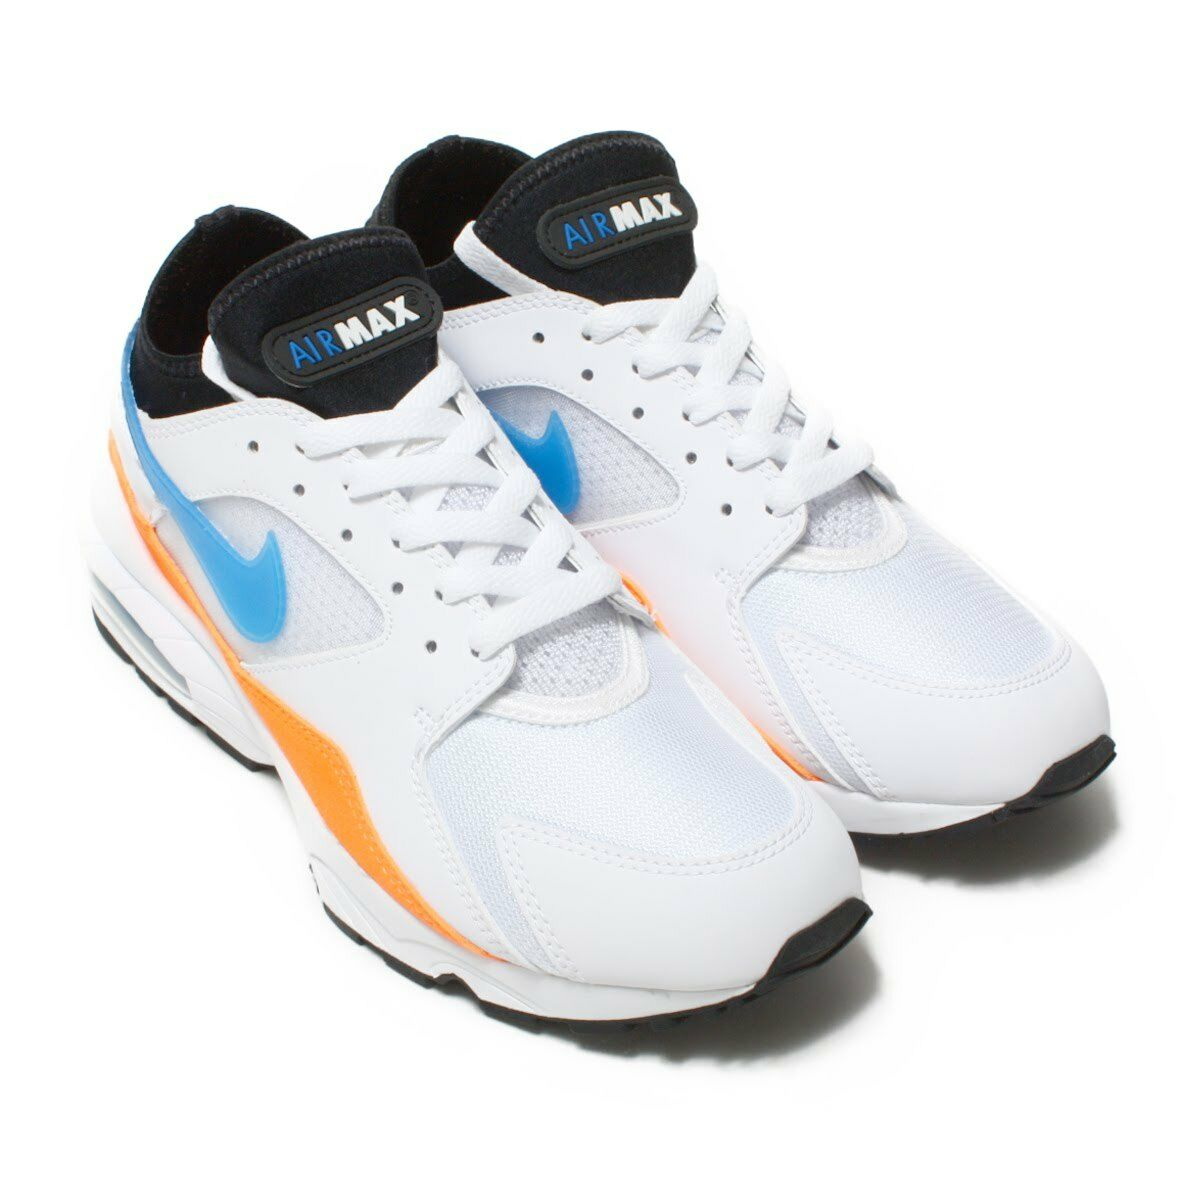 Nike Air Max '93 orange blueeE WHITE US MENS SIZES 306551-104